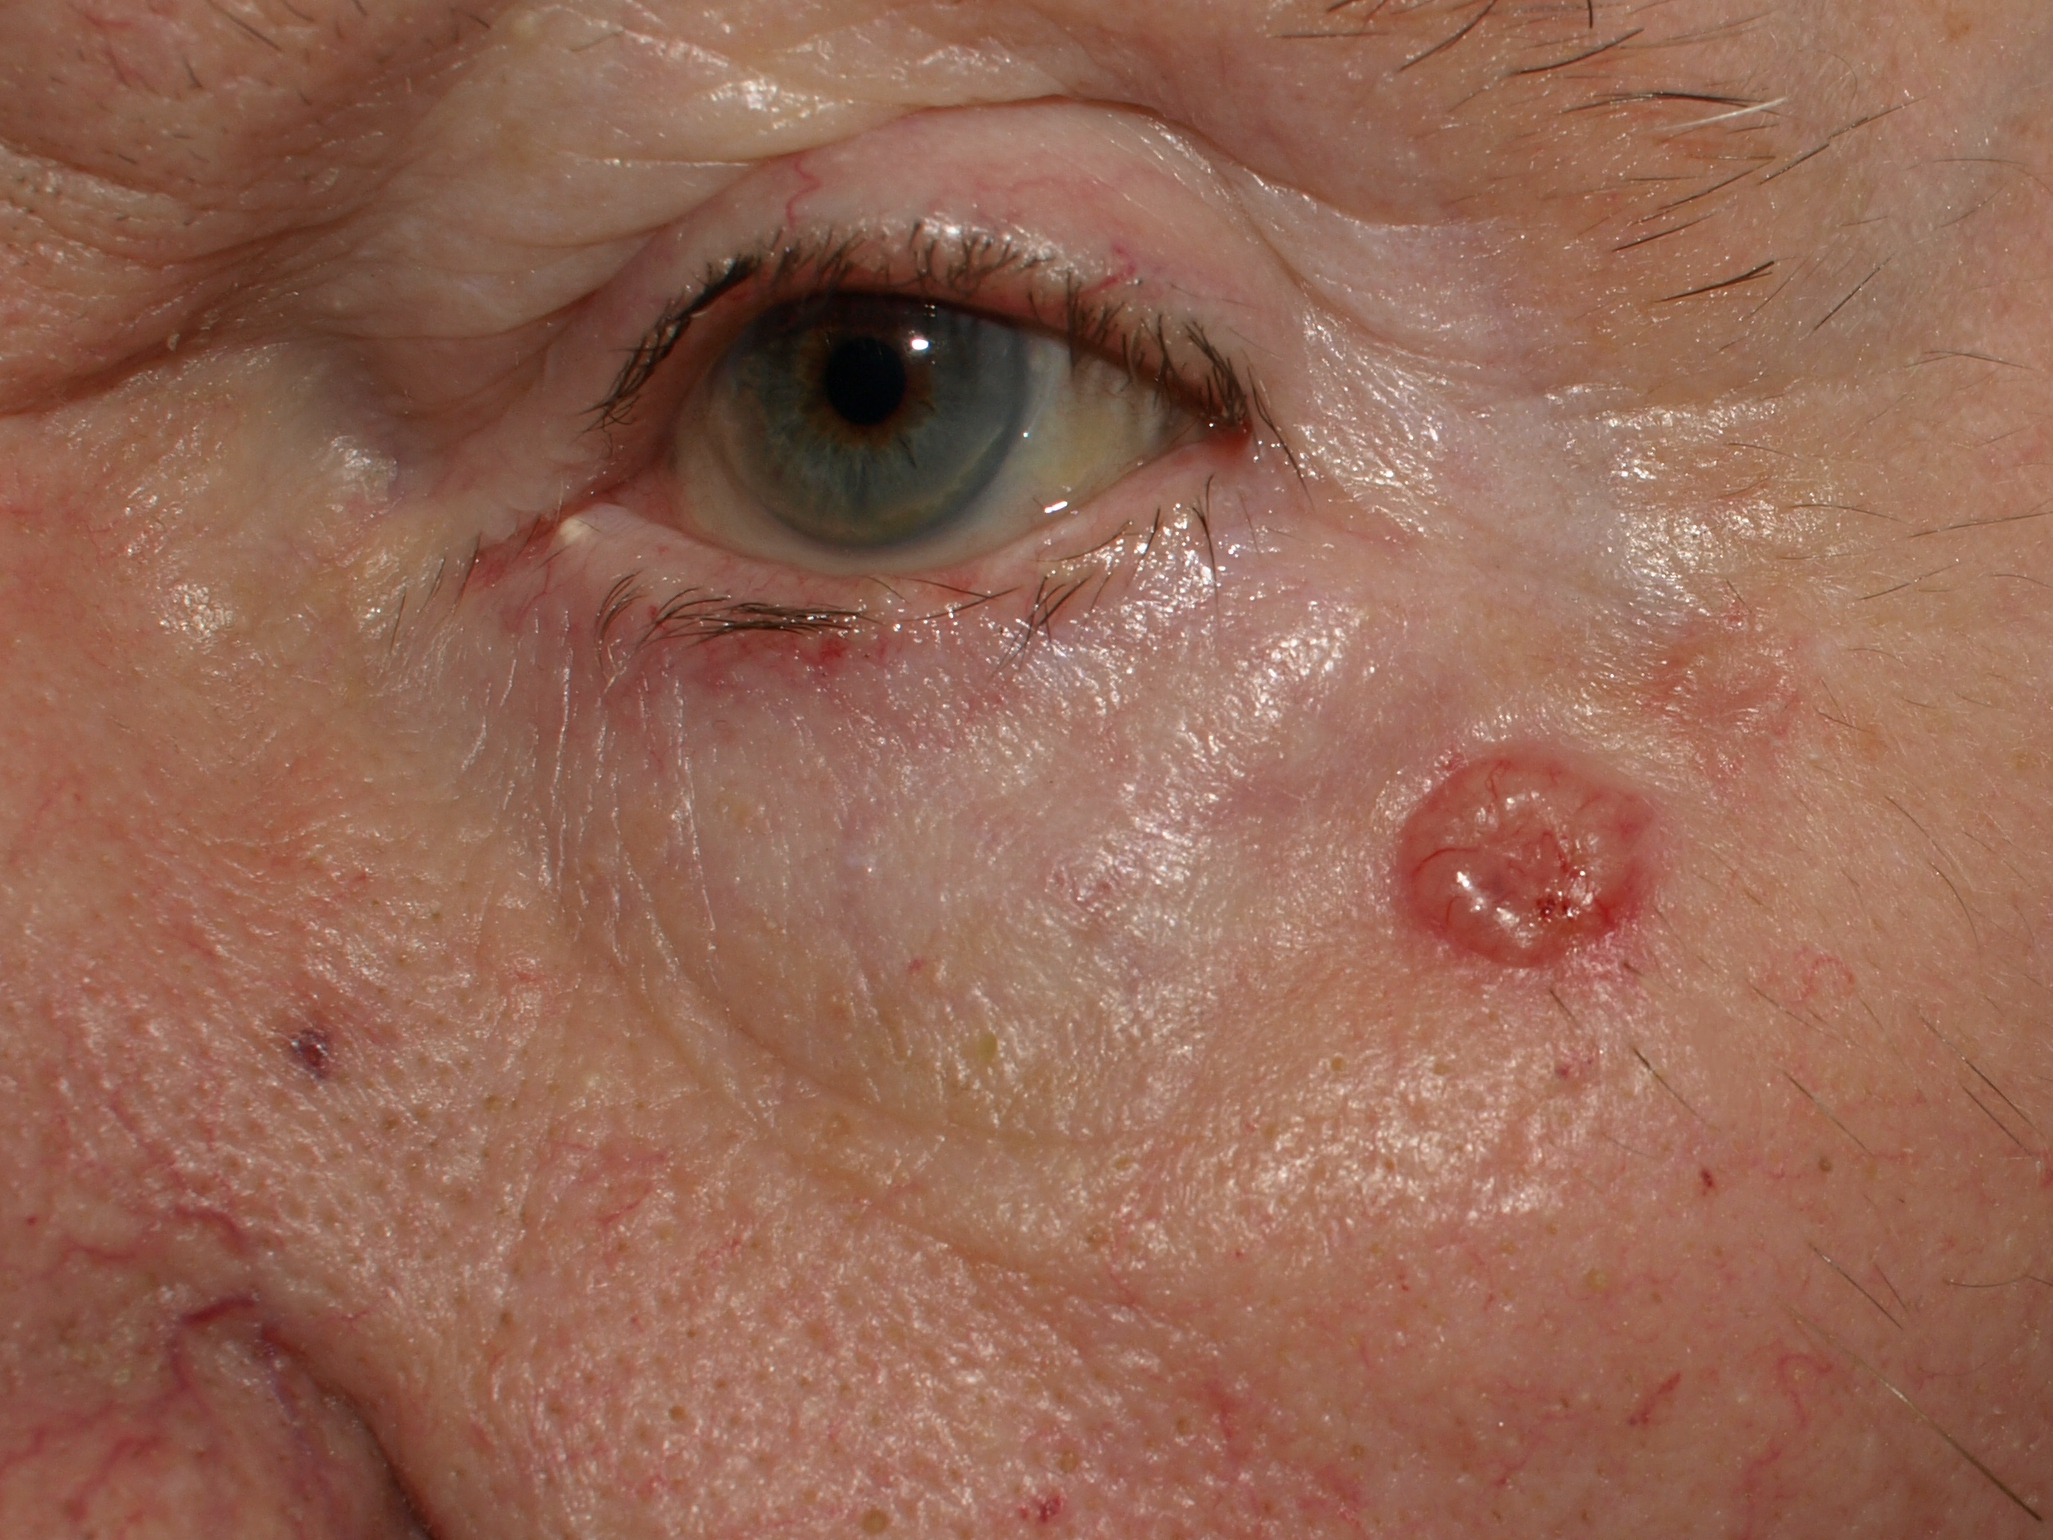 Clinical Photos of Merkel Cell Carcinoma | Merkel Cell ...